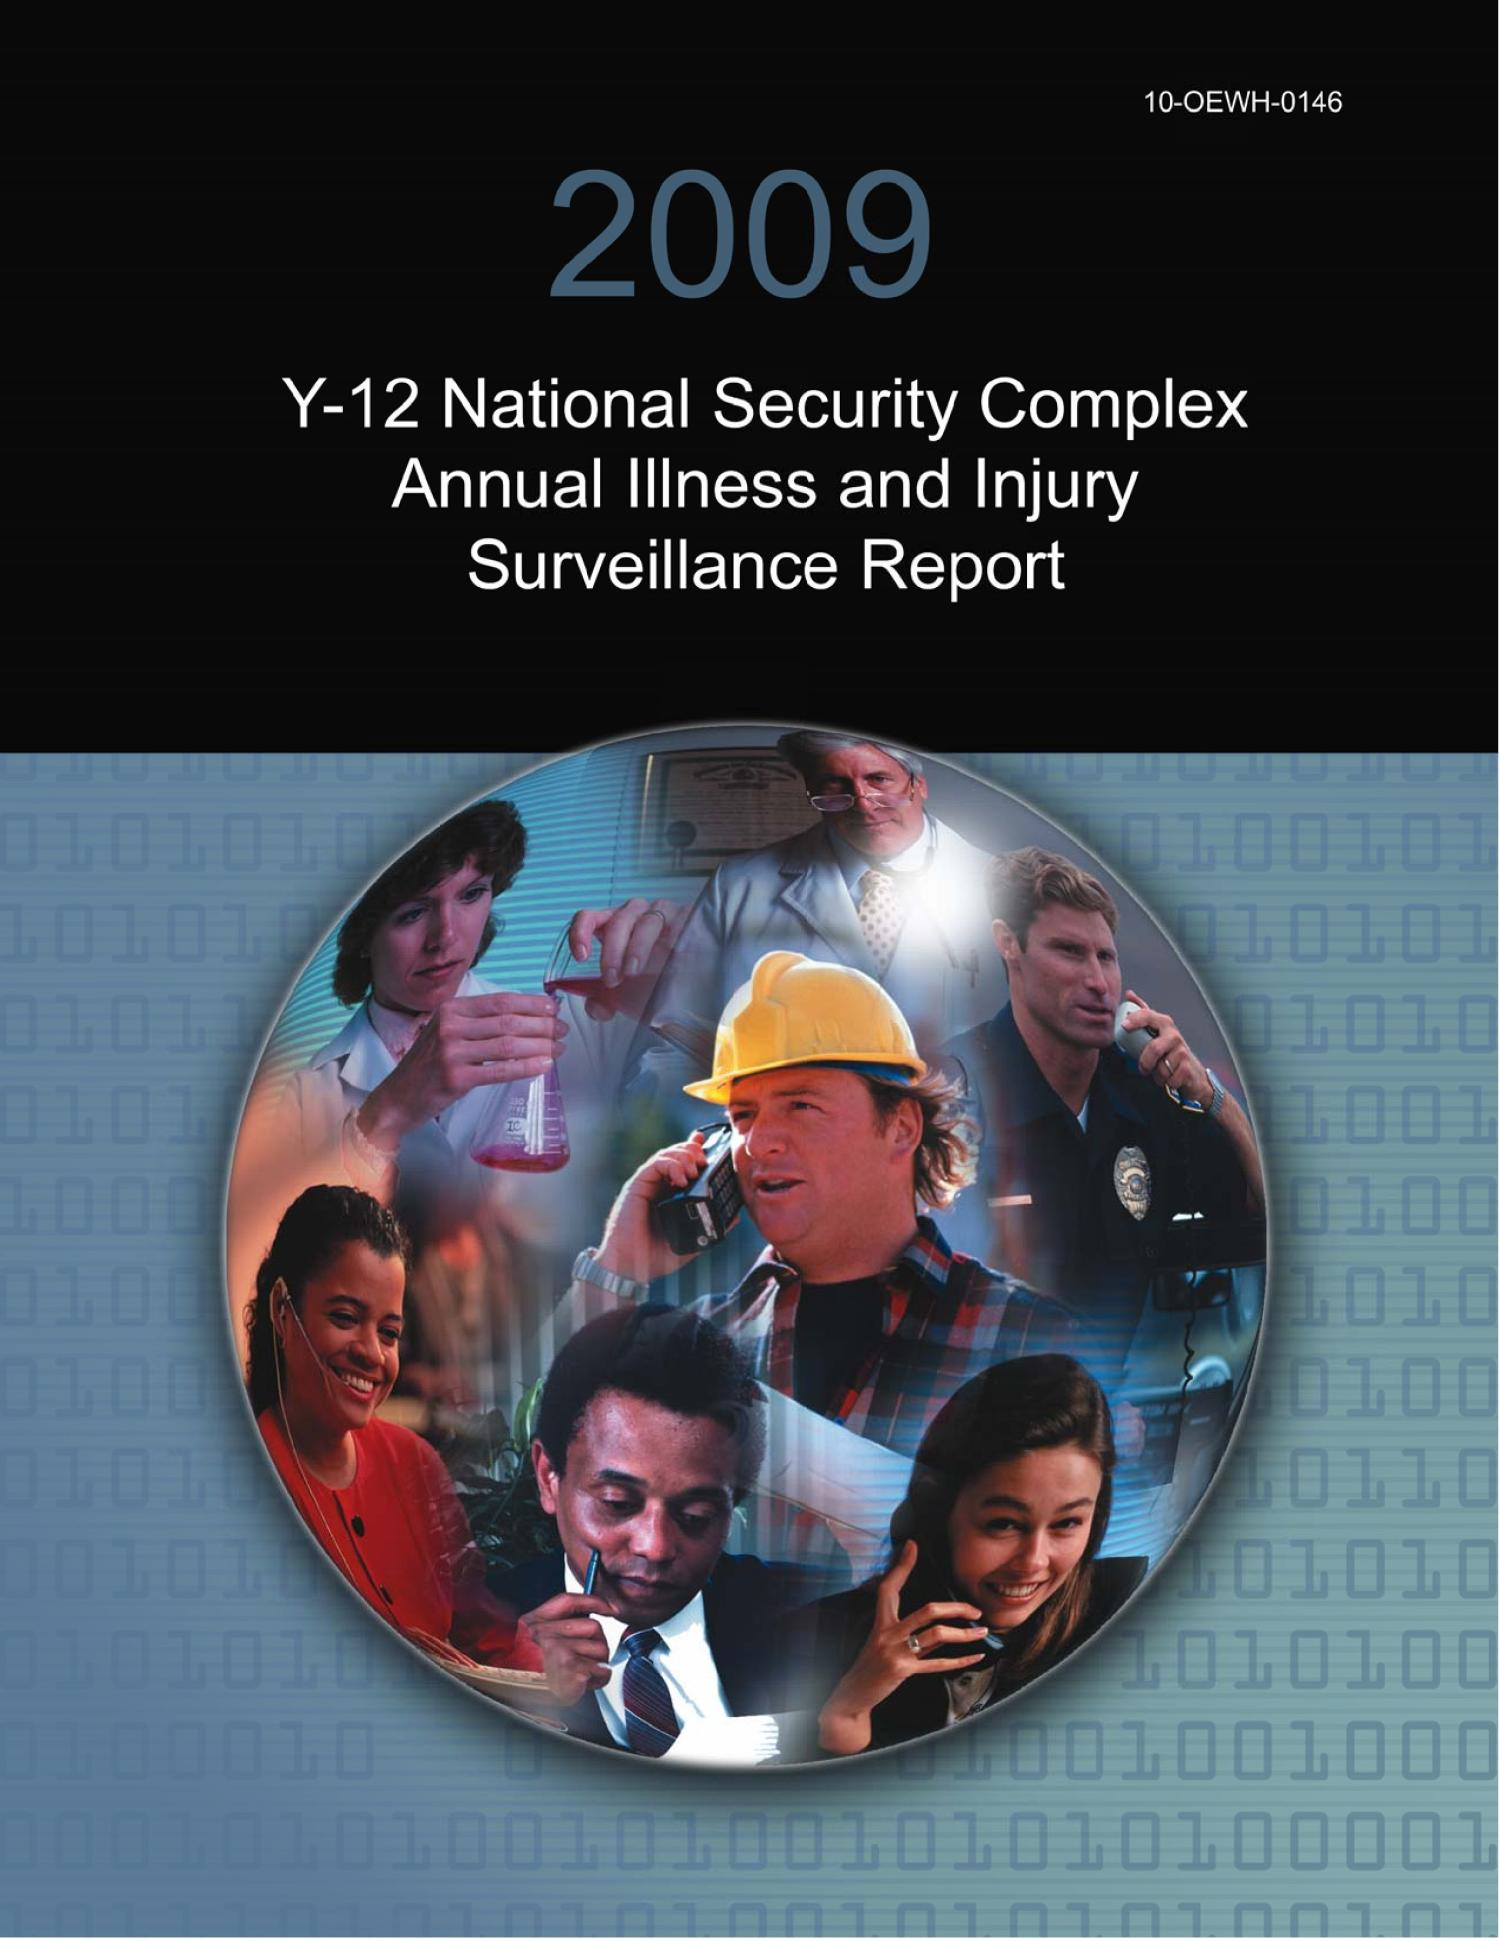 2009 Y-12 National Security Complex Annual Illness and Injury Surveillance Report                                                                                                      [Sequence #]: 1 of 79